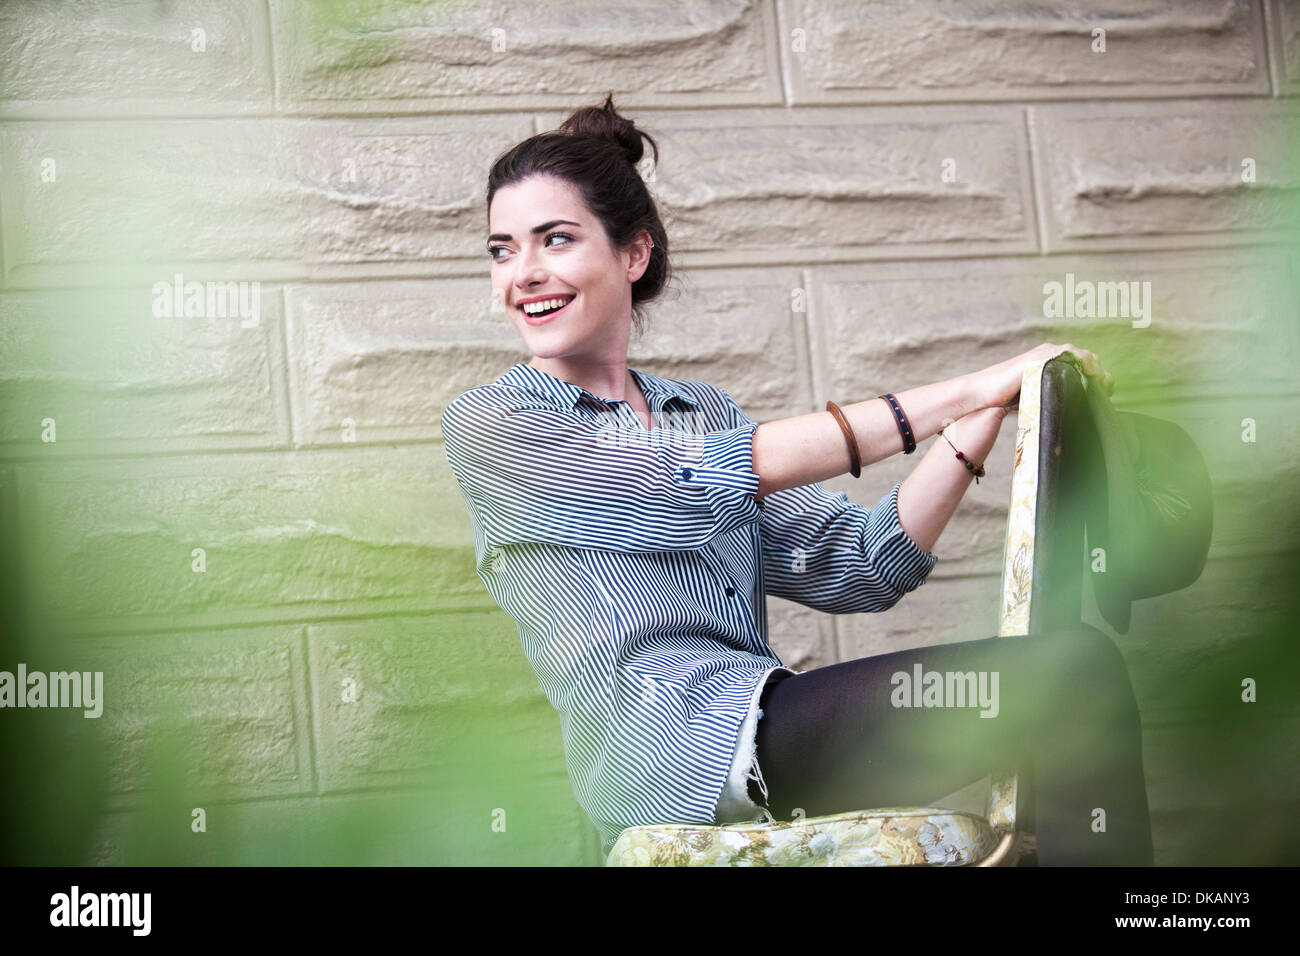 Young woman sitting outside on chair - Stock Image